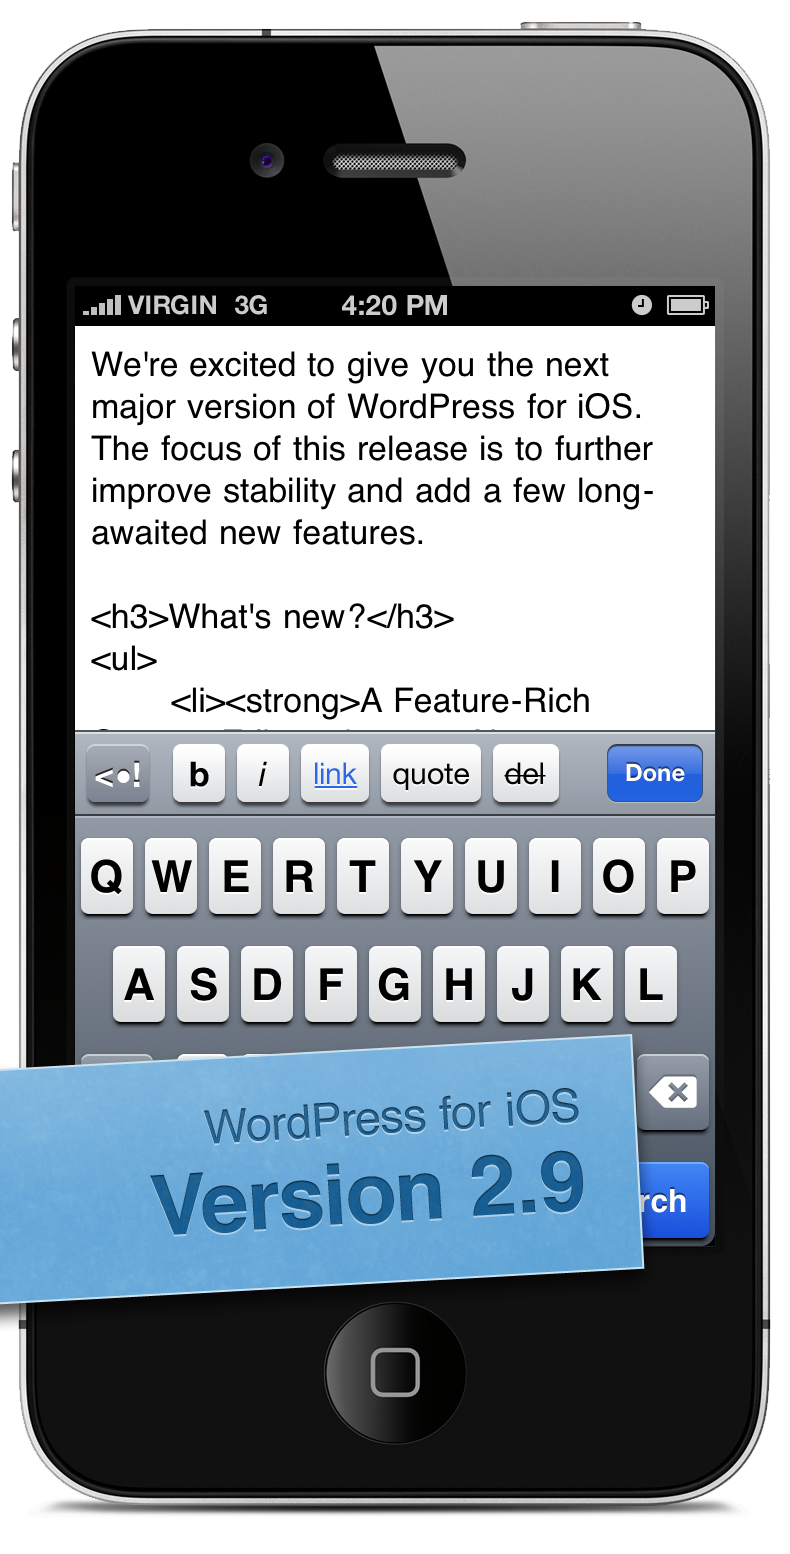 WordPress.com Apps - New in Version 2.9: Full Screen ...